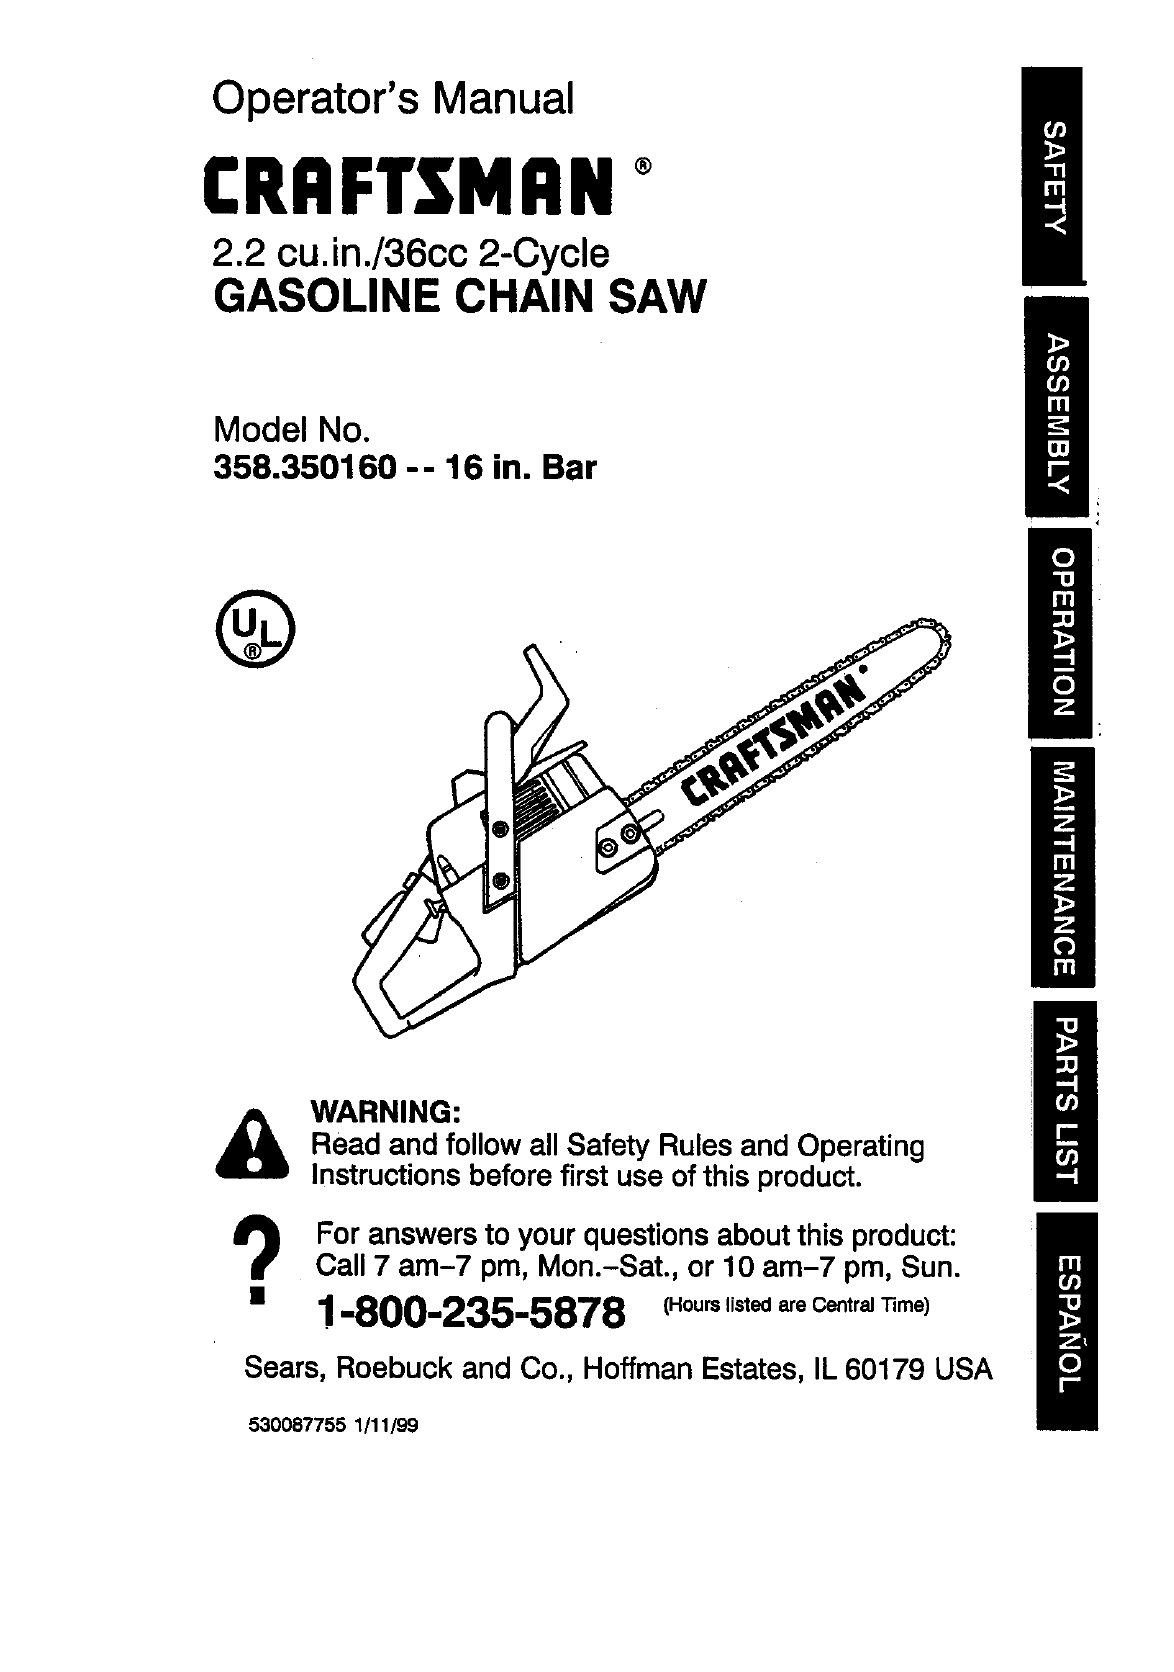 craftsman 358350160 user manual gasoline chain saw manuals and rh usermanual wiki Craftsman Chainsaw Repair Manual Craftsman 20 Chainsaw Manual